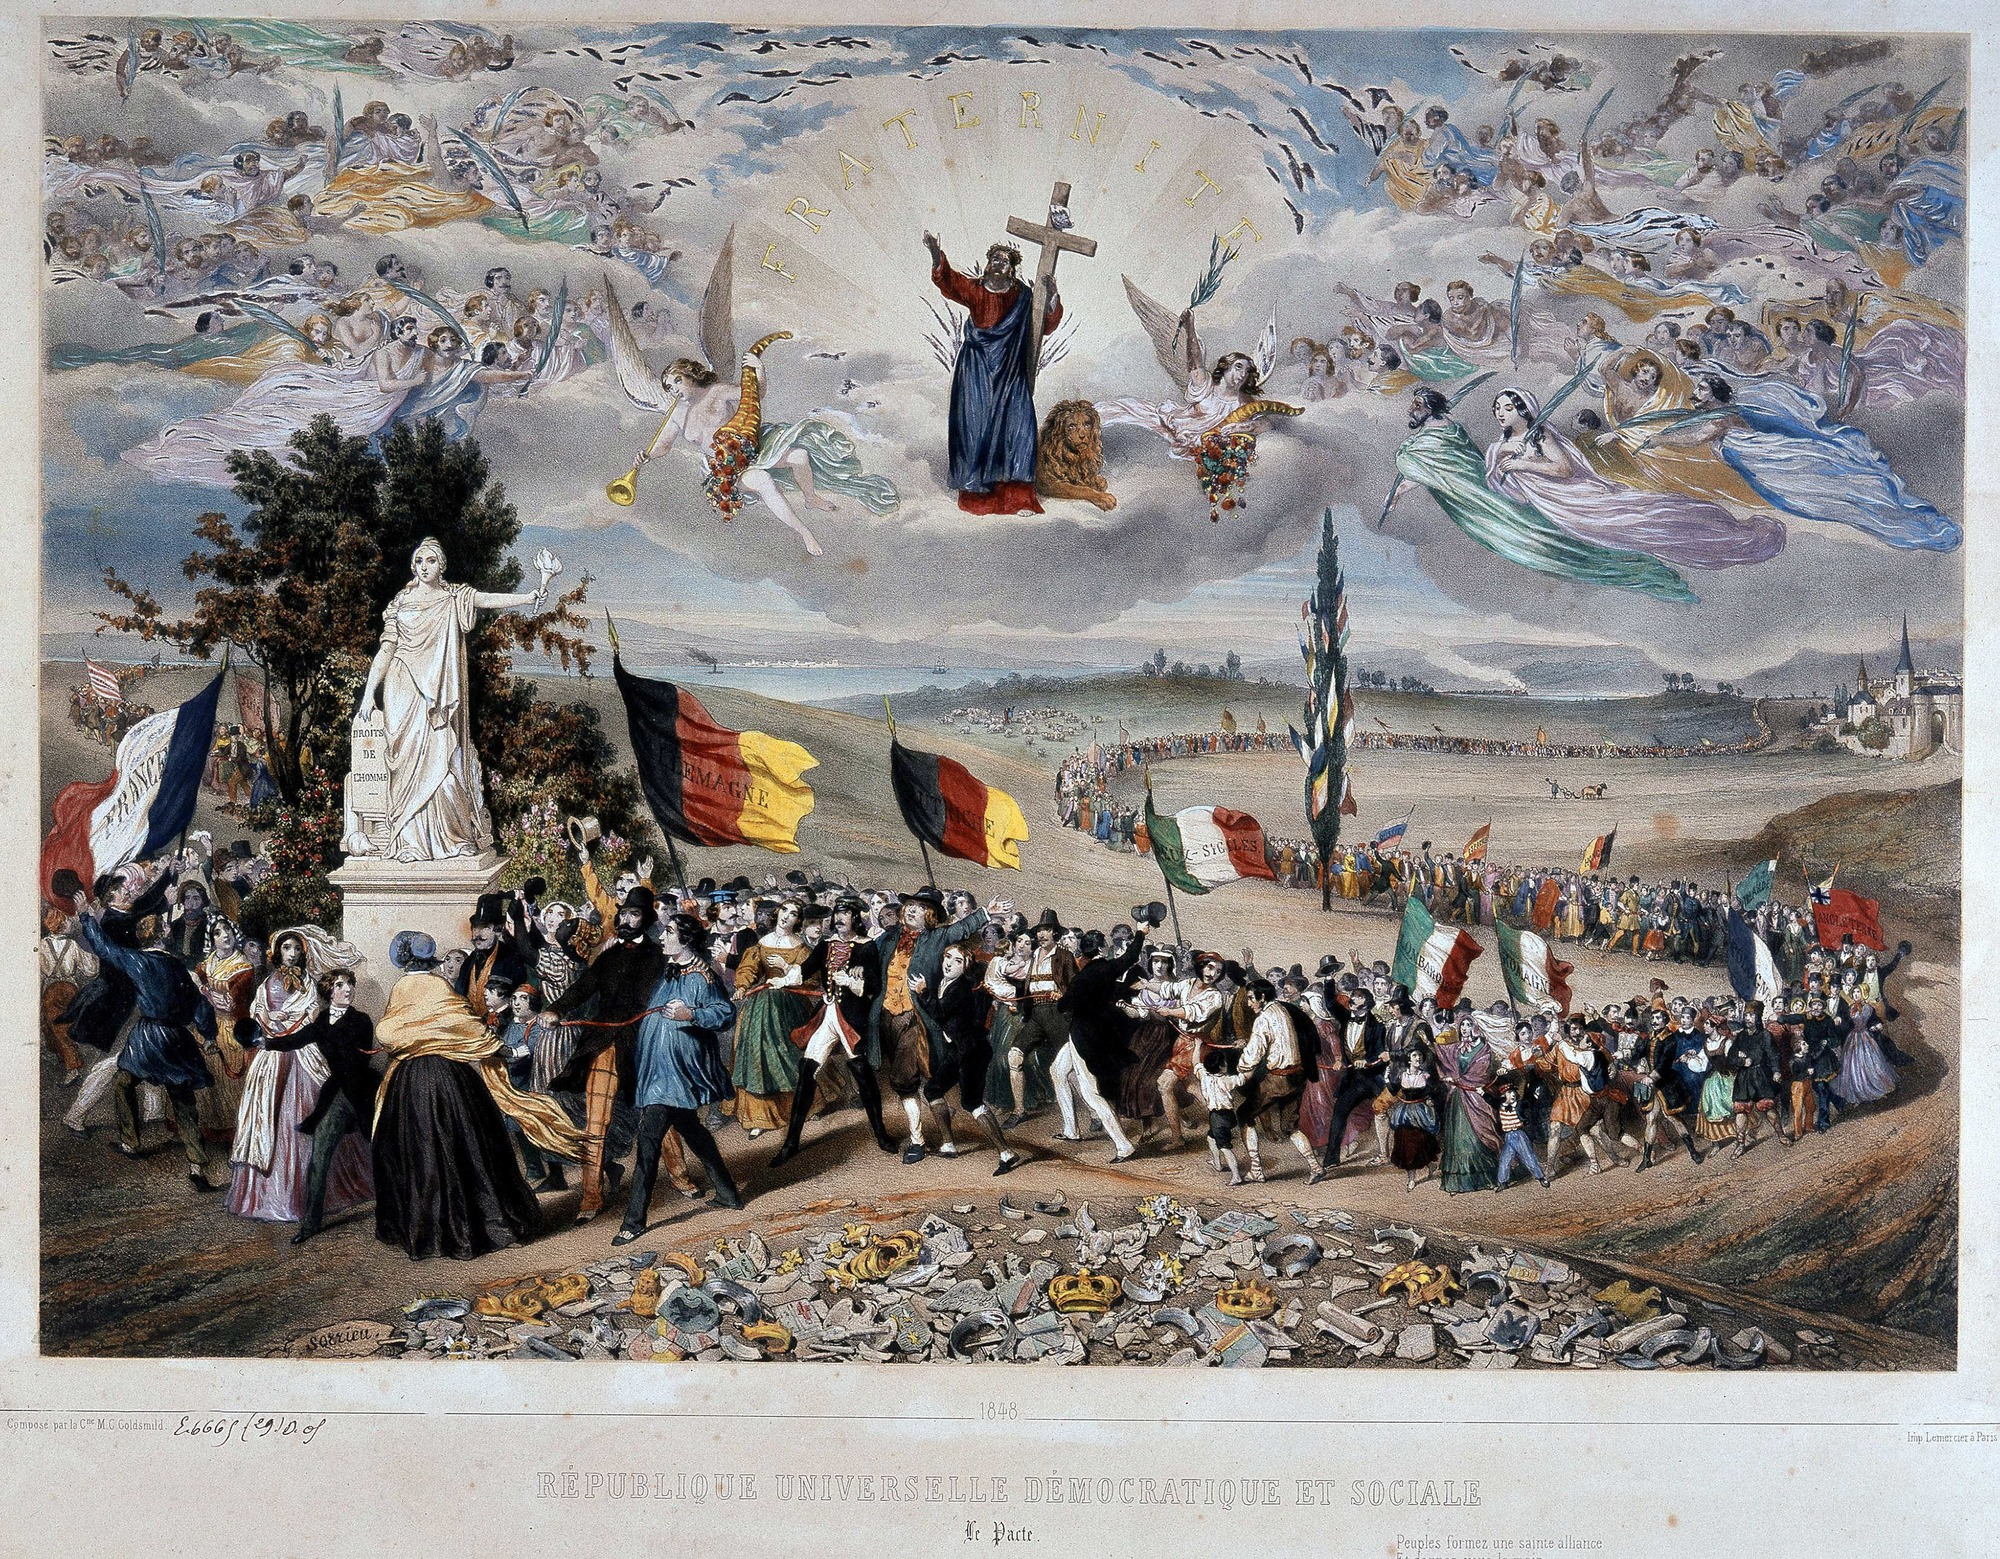 1848, le printemps des peuples (Selva/Leemage)